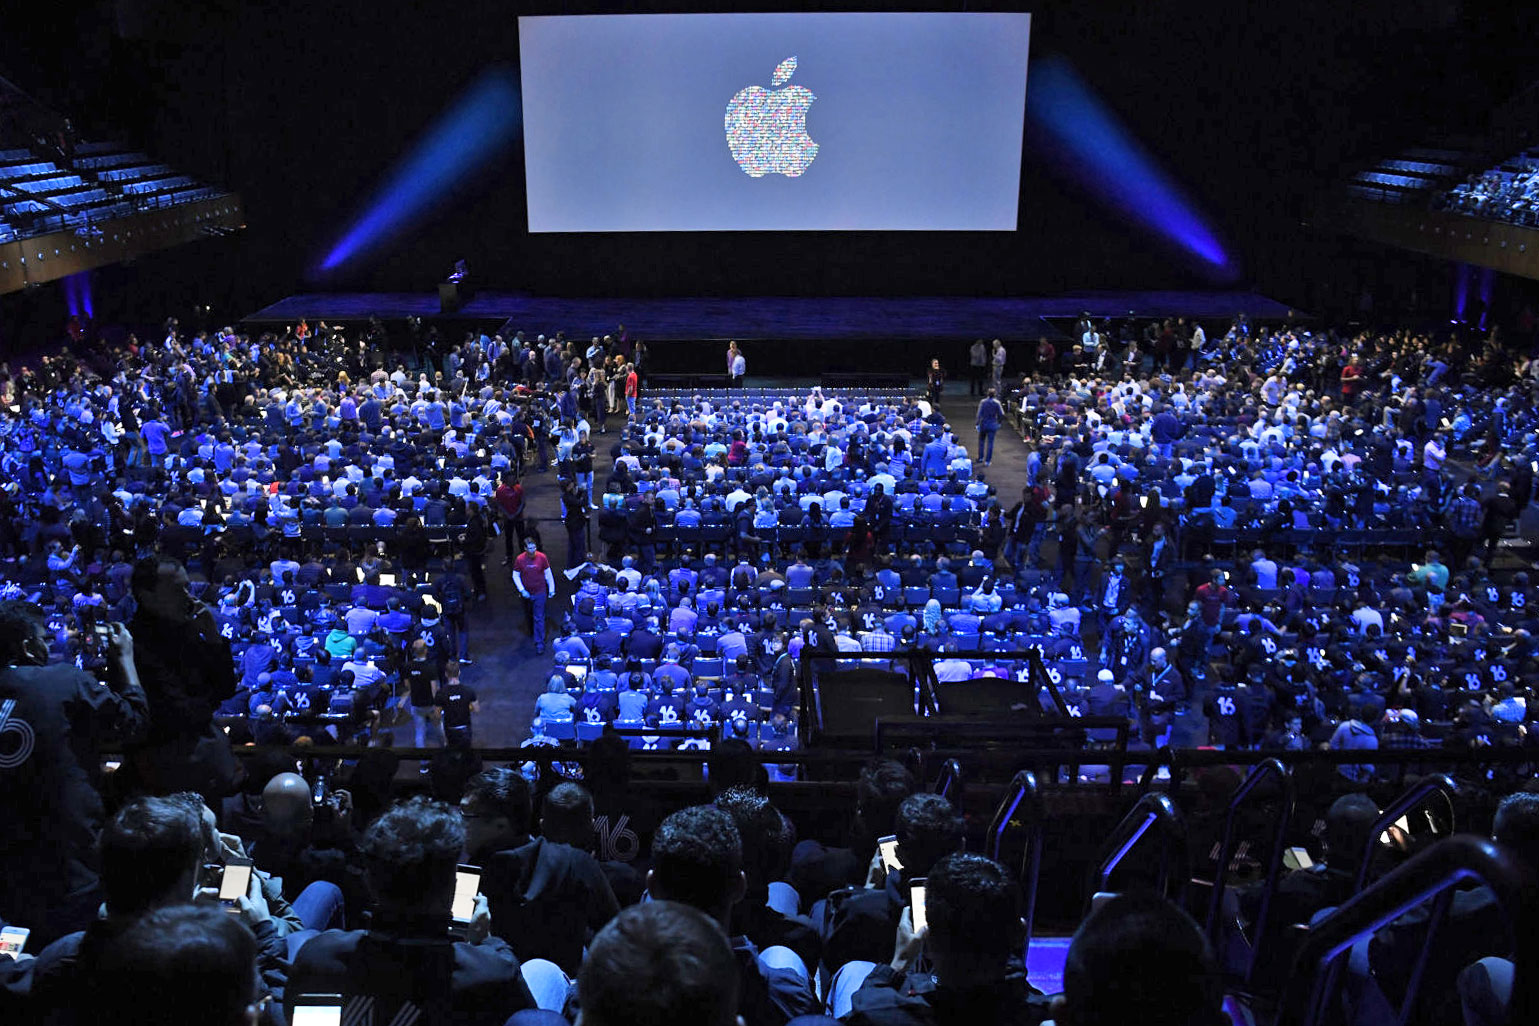 What to expect at WWDC 2018